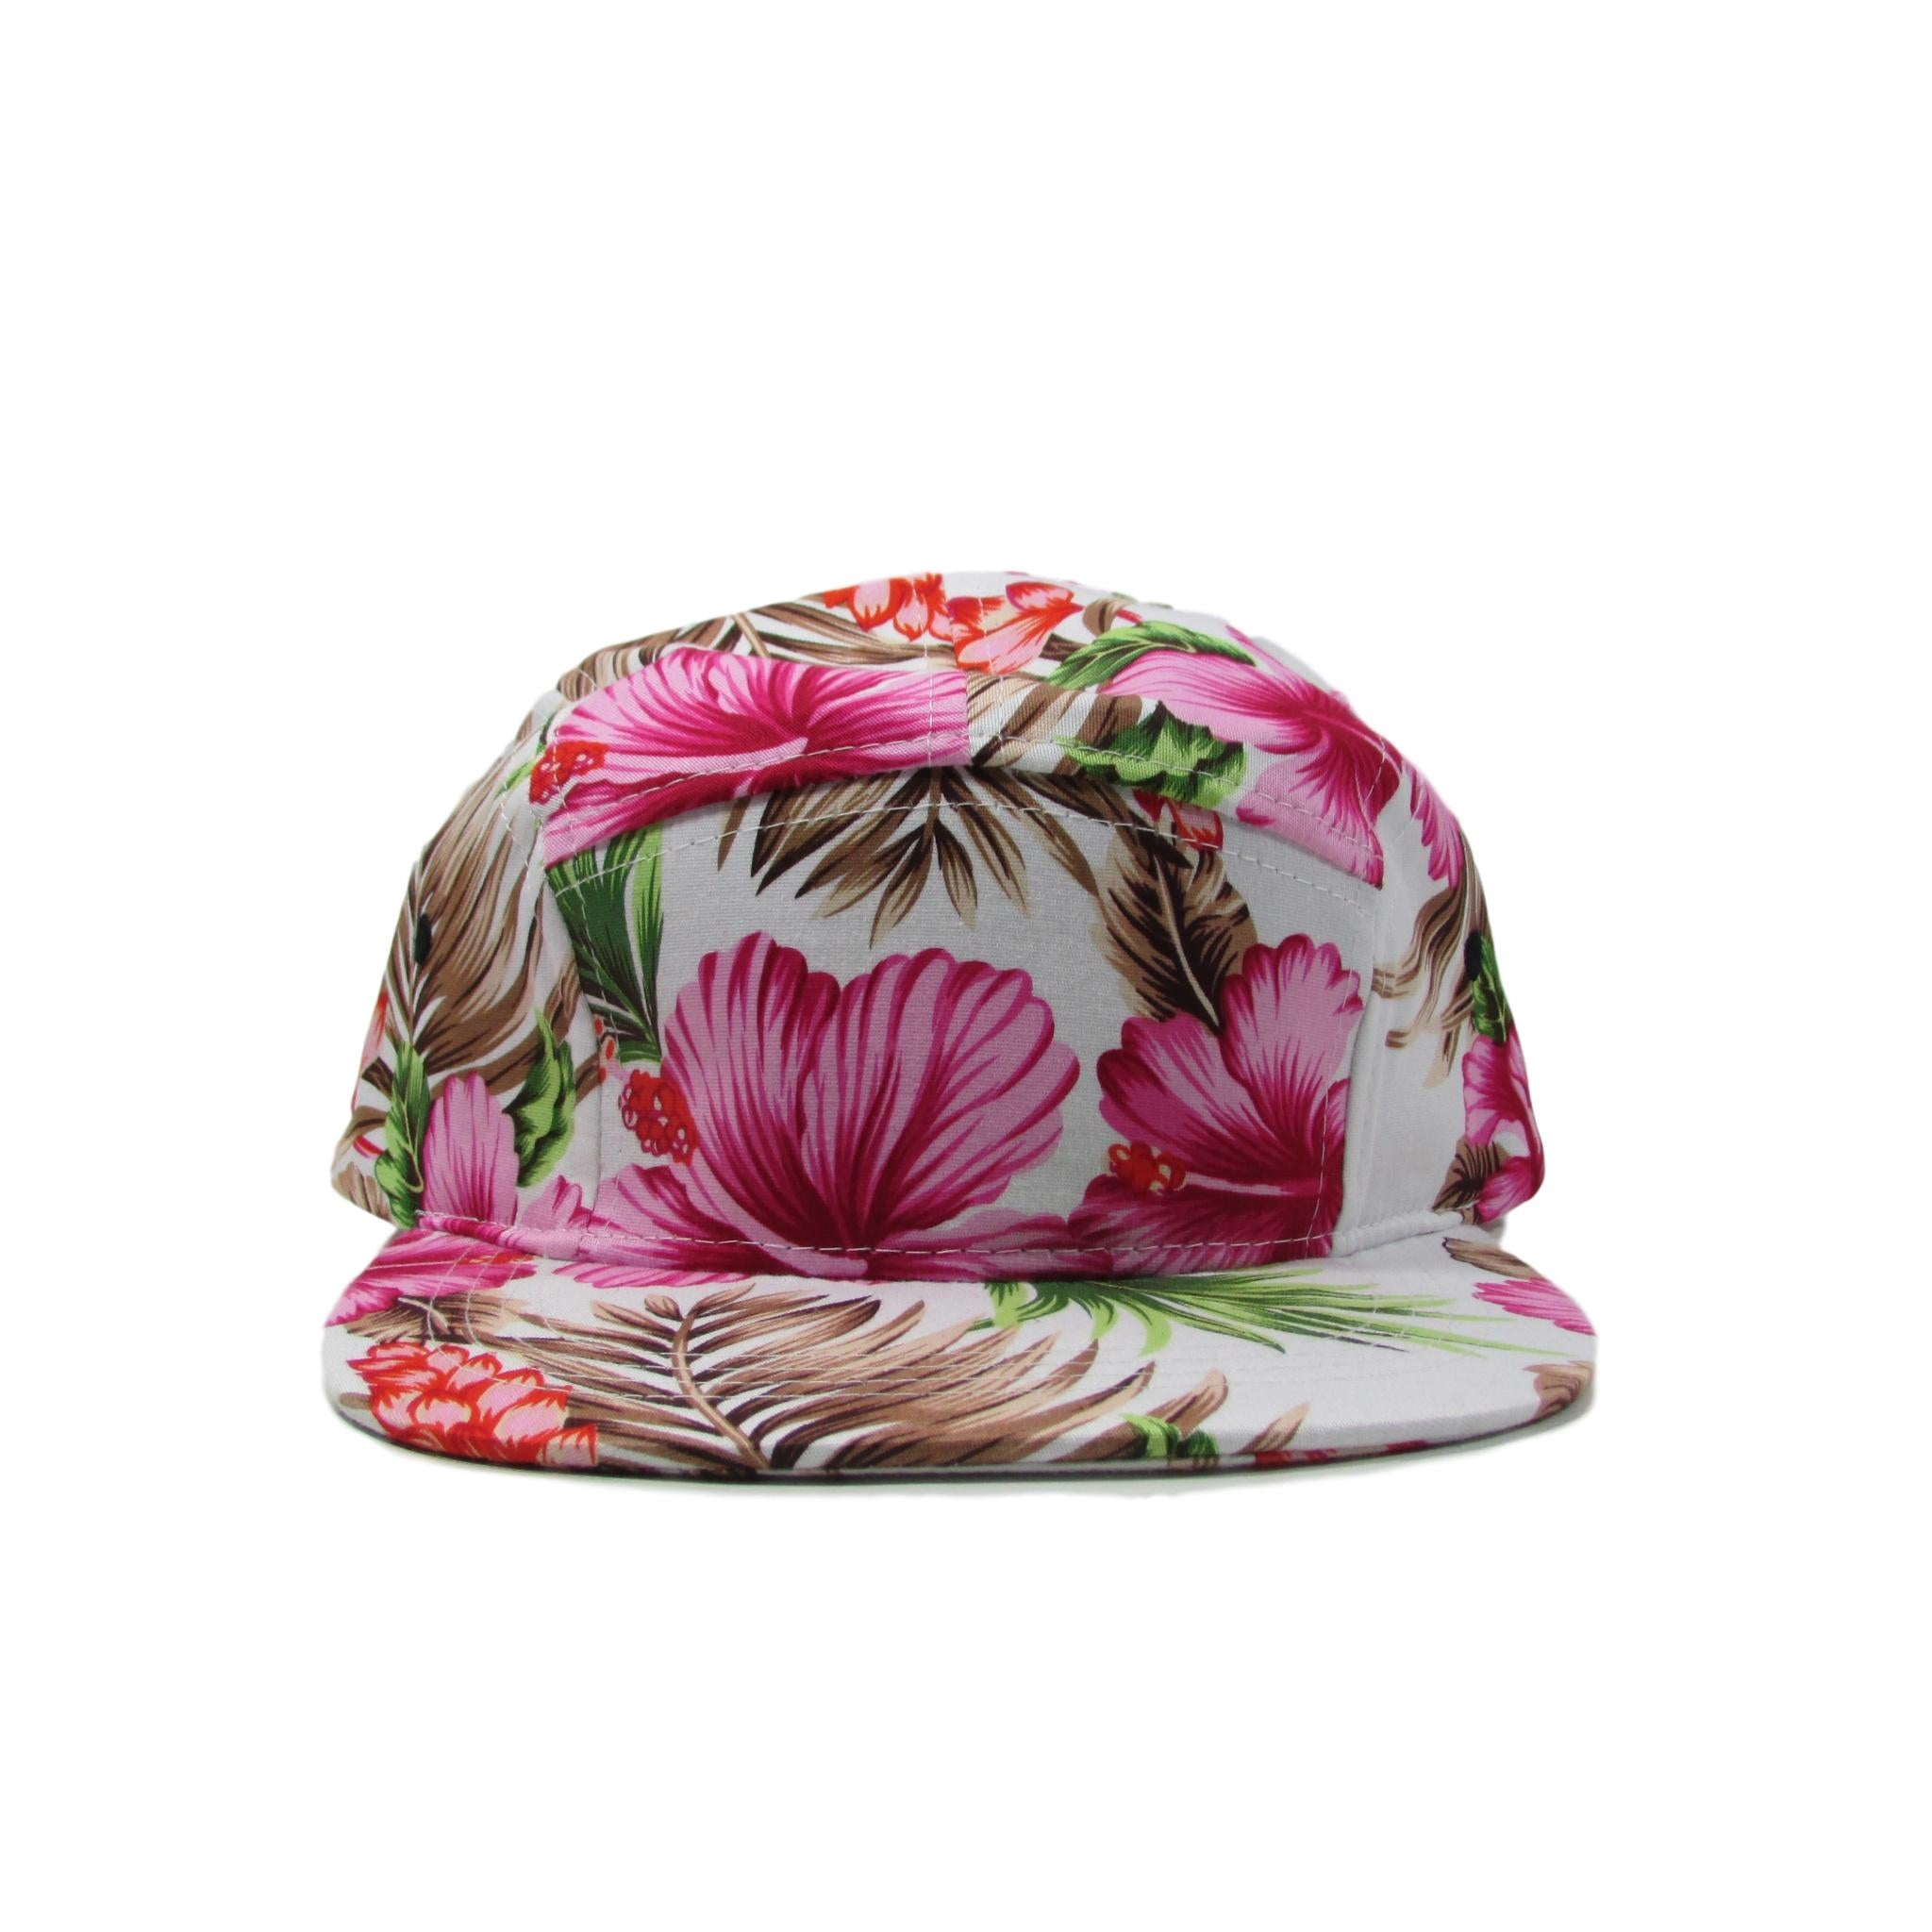 BK Caps Pink Floral Hawaiian 5 Panel Leather Strapback Hat